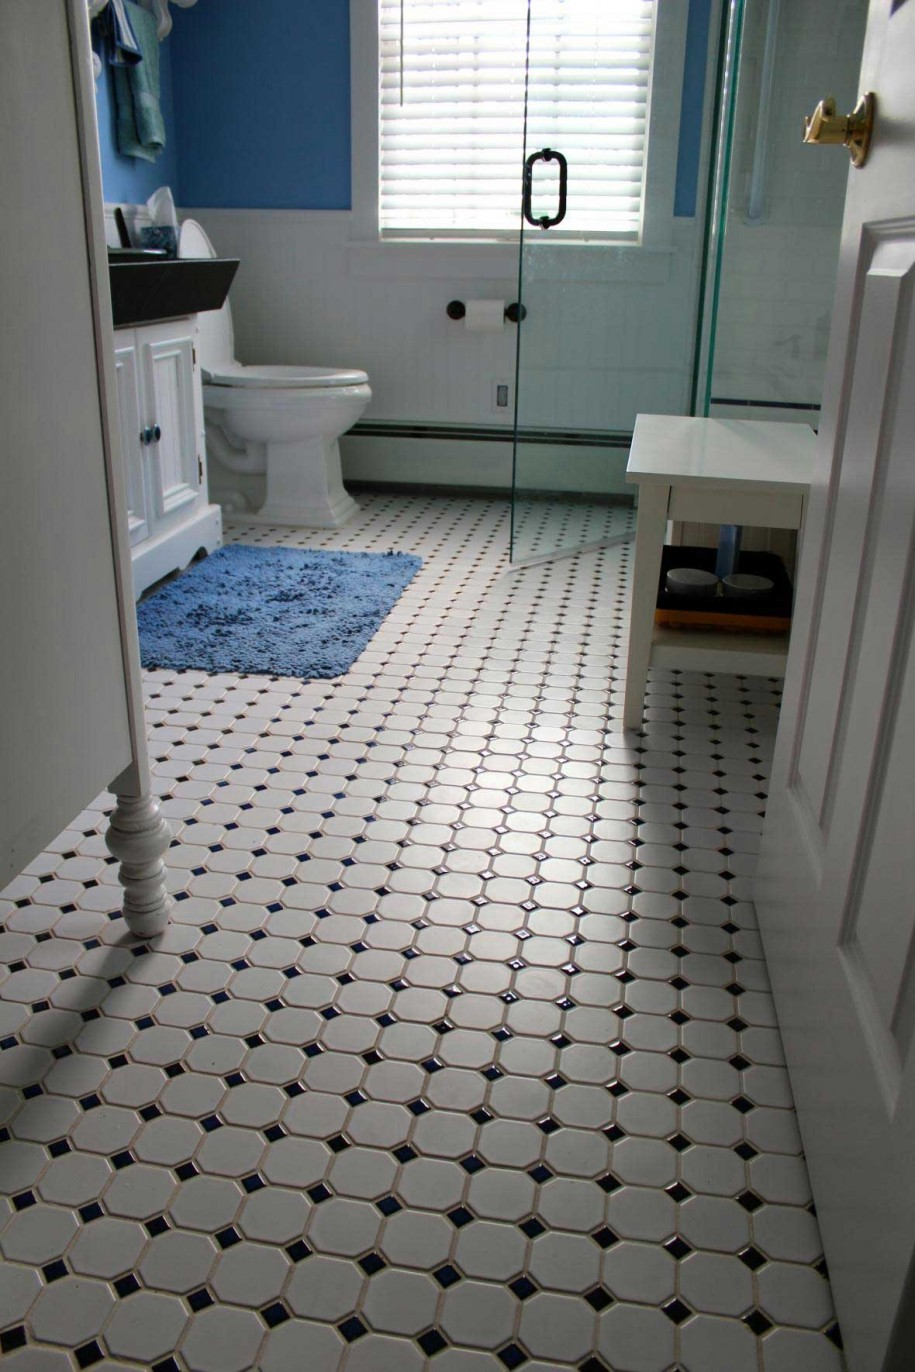 astonishing-bathroom-design-featuring-glass-shower-room-and-white-toilet-also-painted-white-bath-vanity-plus-white-bench-with-vintage-tiles-floor-pattern-and-blue-mattress-decor-vintage-bathroom-tile